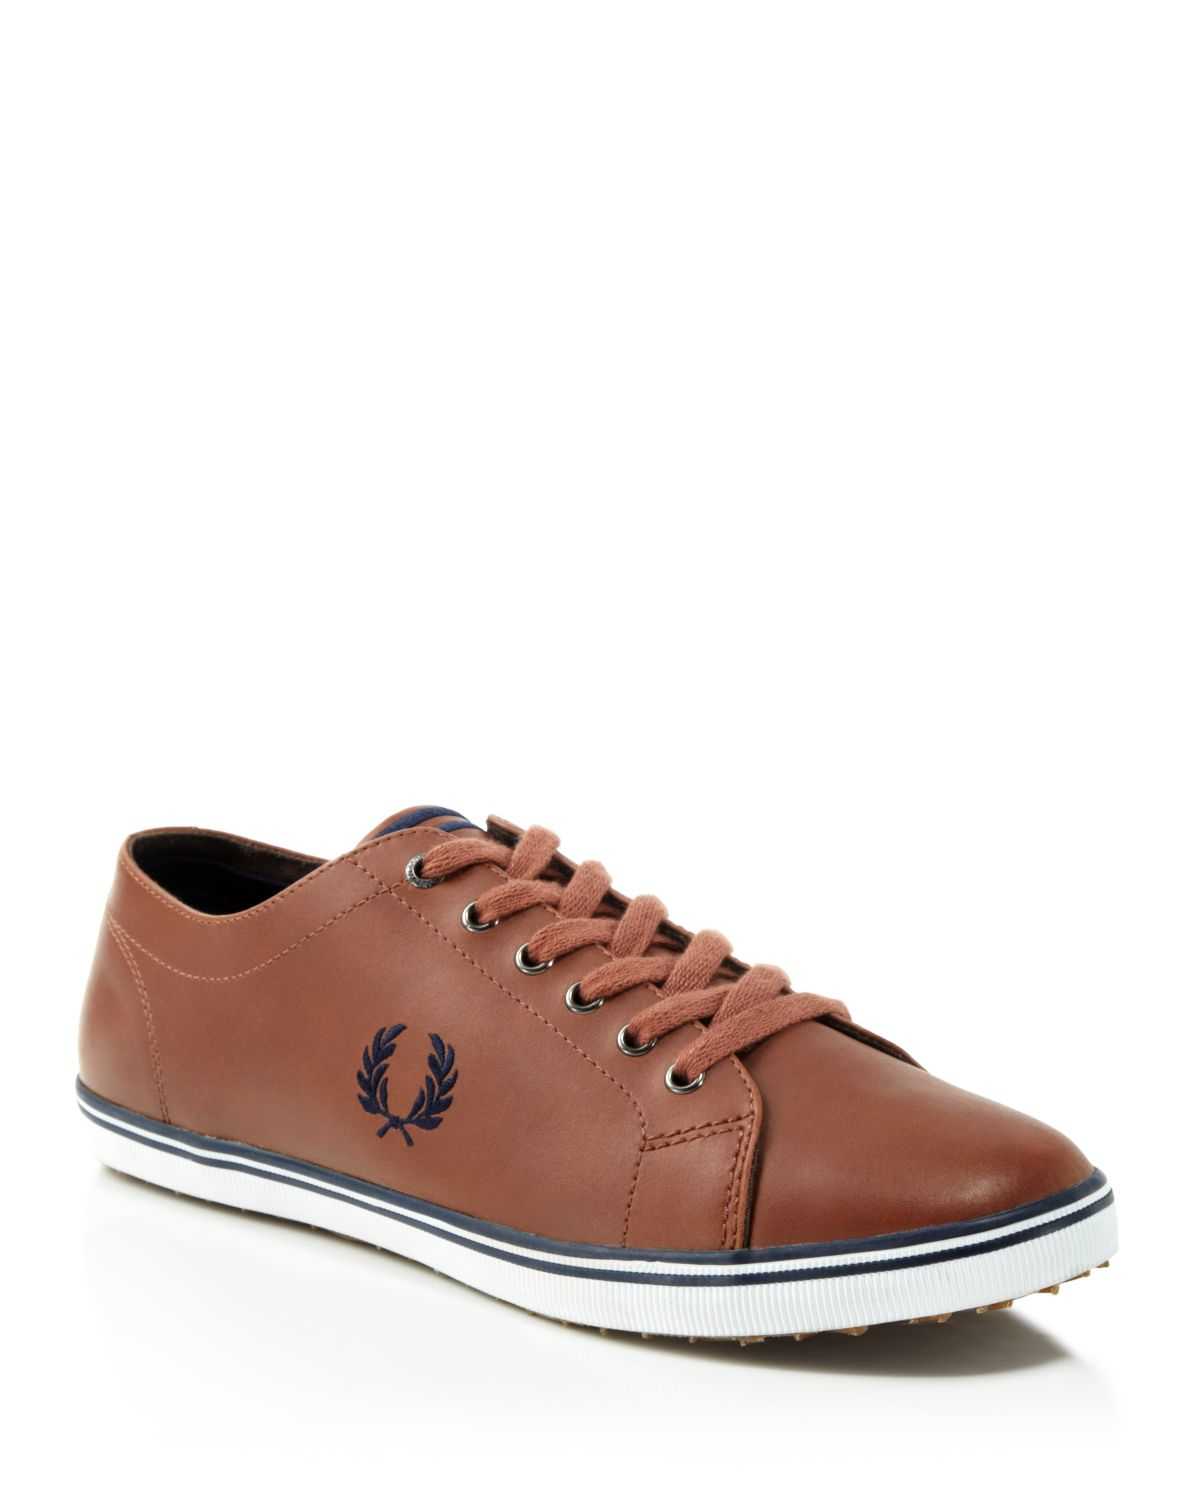 Mens Brown Leather Tennis Shoes